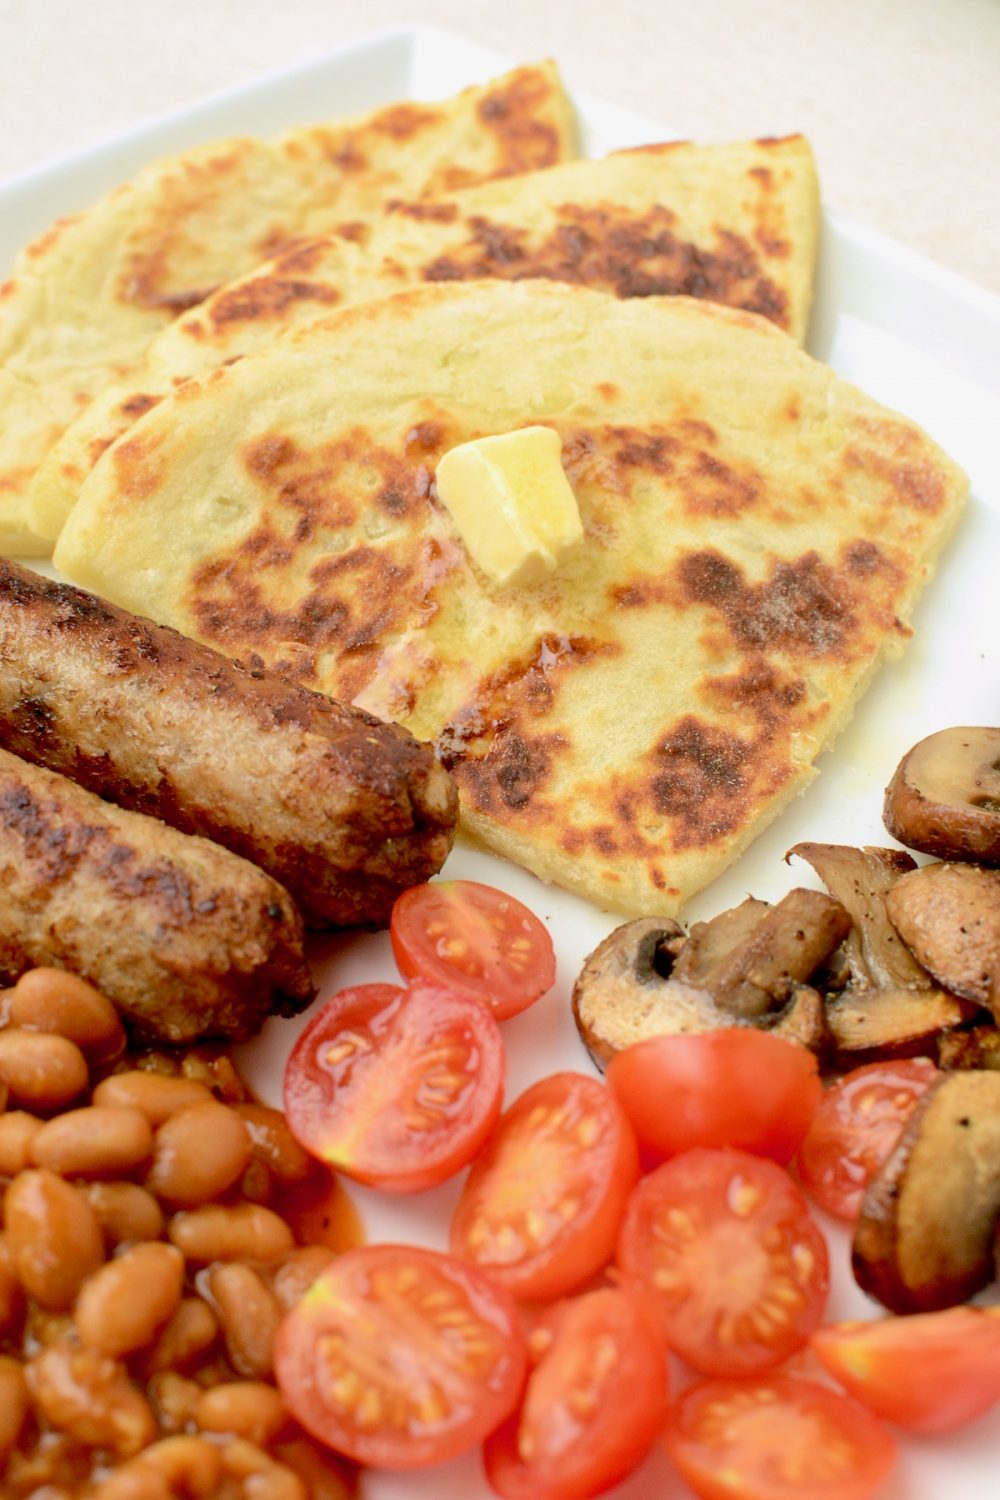 Tatty scones with butter as part of a fully vegan Breakfast: There are vegan sausages, baked beans, cherry tomatoes and fried mushrooms.